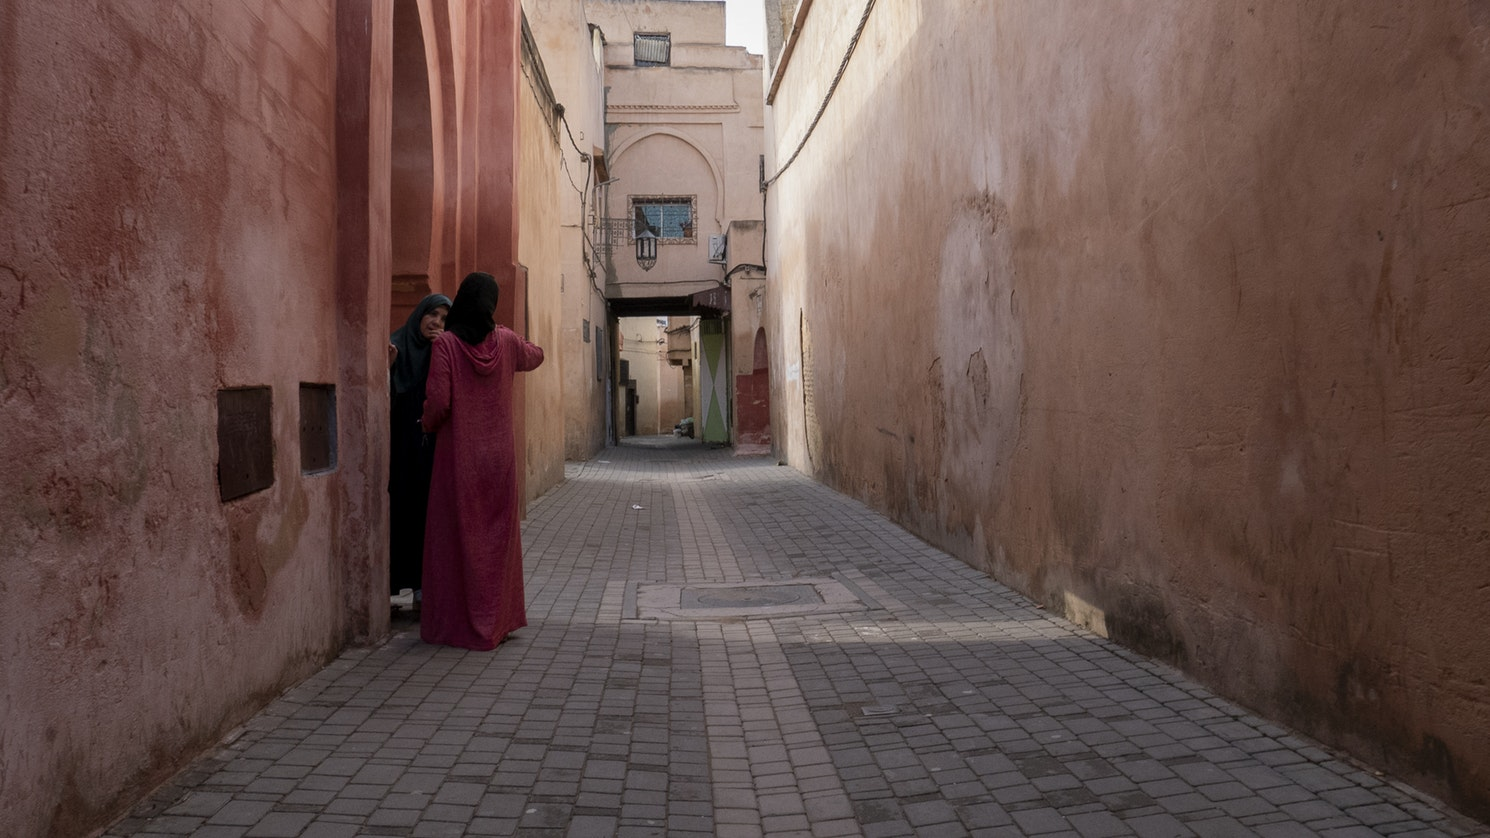 Stroll through the backstreets of Meknes and cherish the abundance of pastel colour palettes.